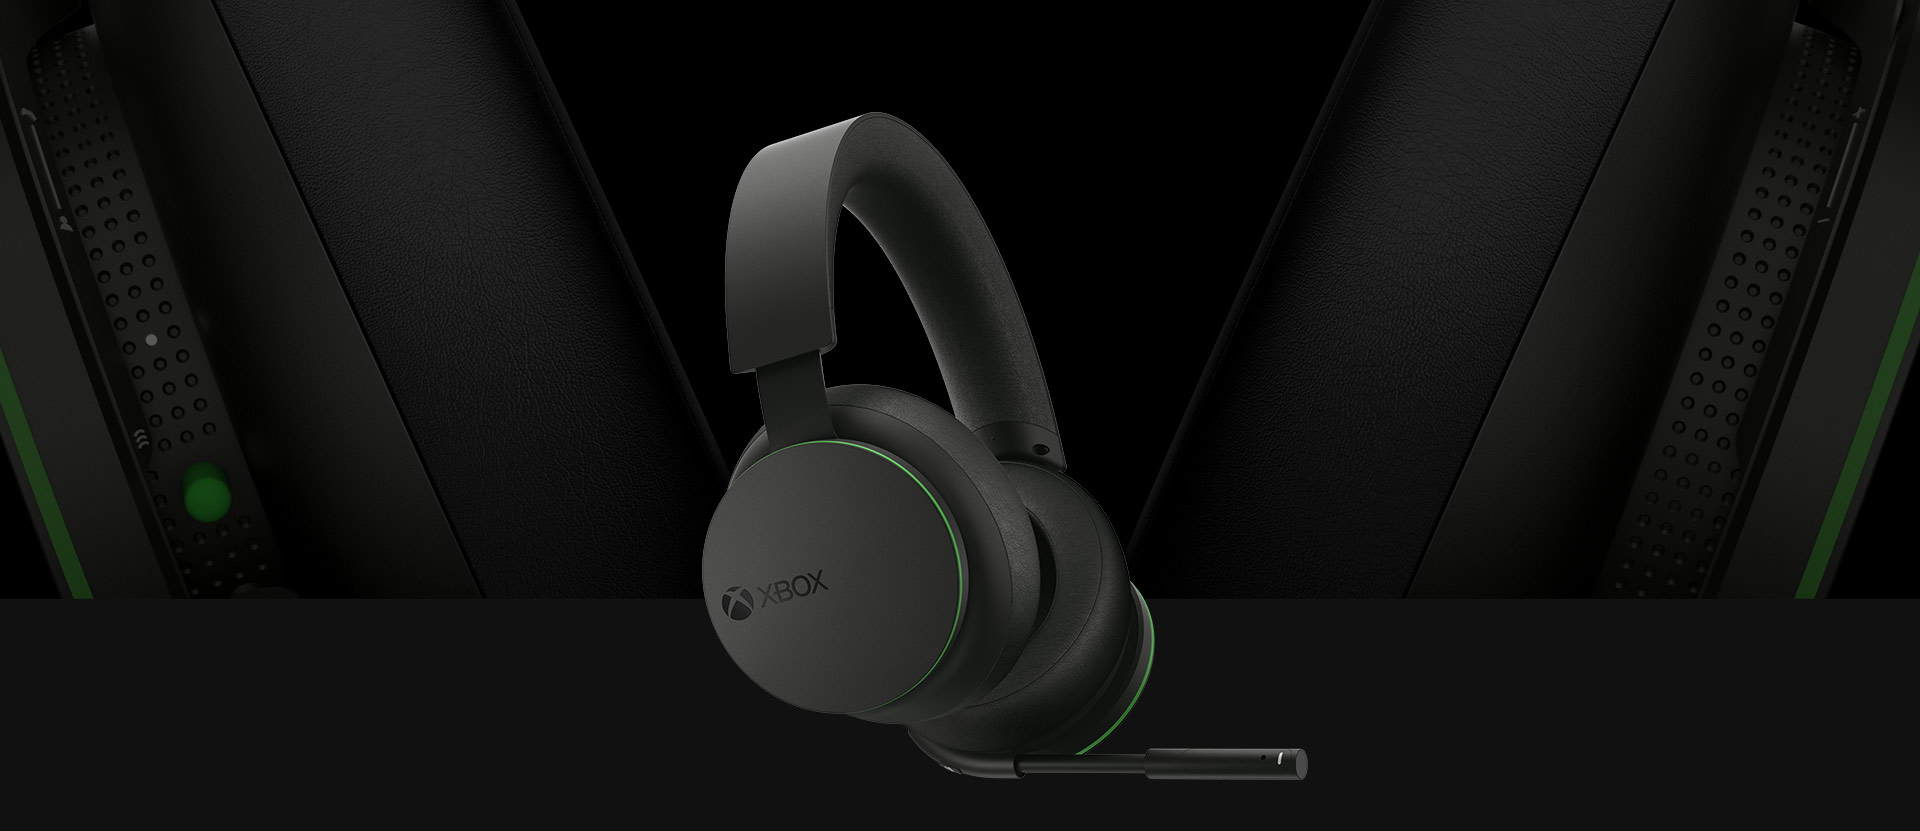 Uploads%2farticles%2f14797%2fxbox headset